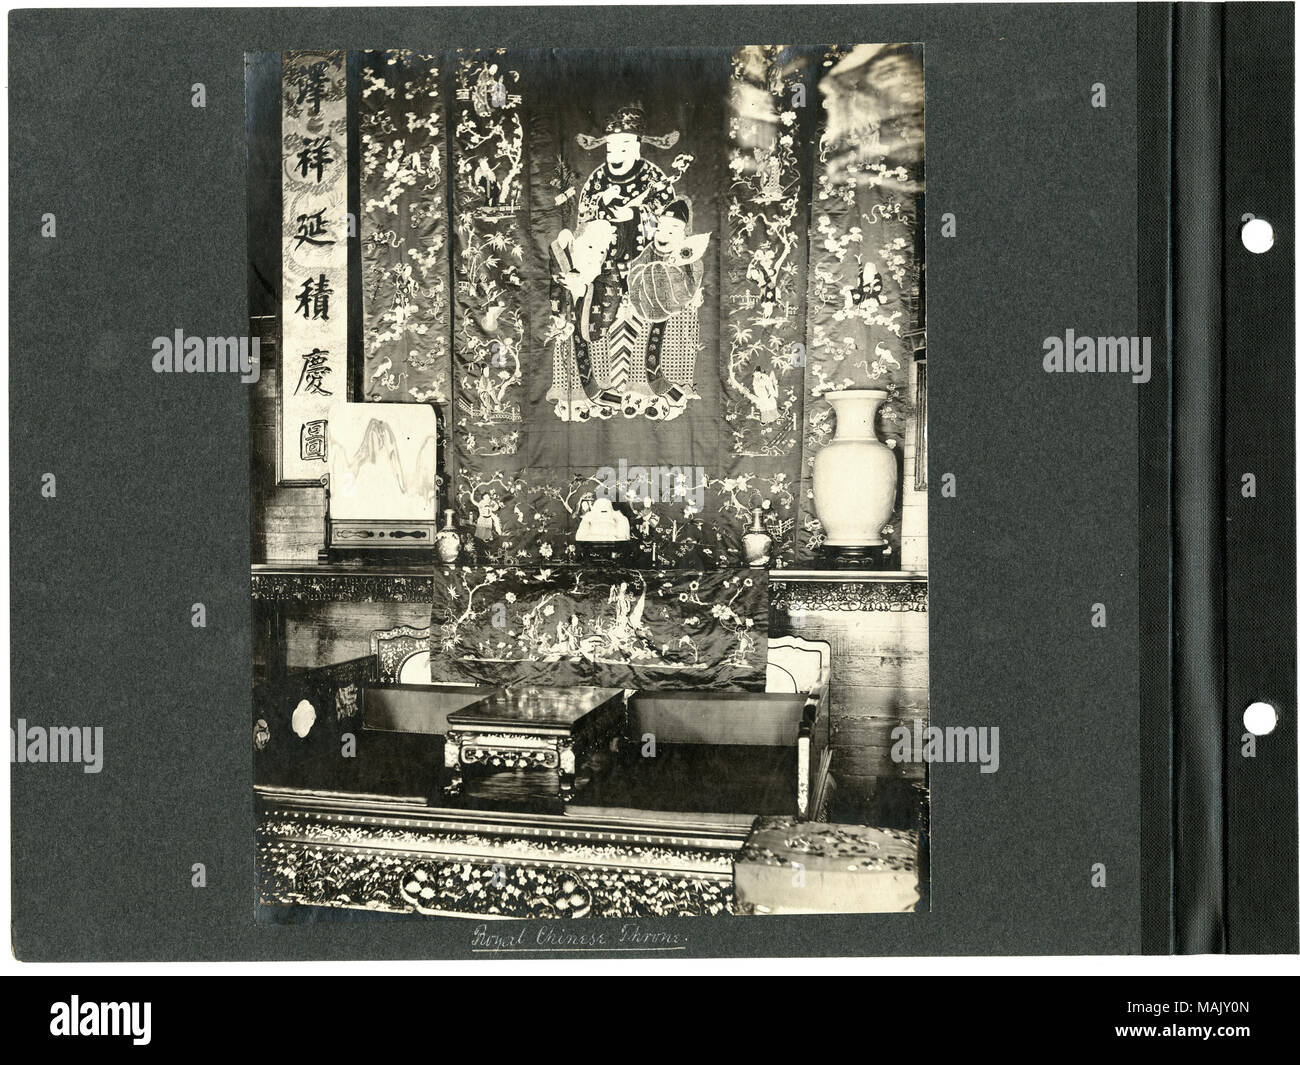 Vertical, sepia photograph showing a low, wooden, backless stool/seat. The wall behind the seat includes several elaborate Chinese-style wall hangings depicting people, foliage, designs, and characters. There are also small vases, a statue of Buddha, and a painting of a mountain on a small shelf or table behnind the seat. Title: 'Royal Chinese Throne.' (1904 World's Fair).  . 1904. - Stock Image